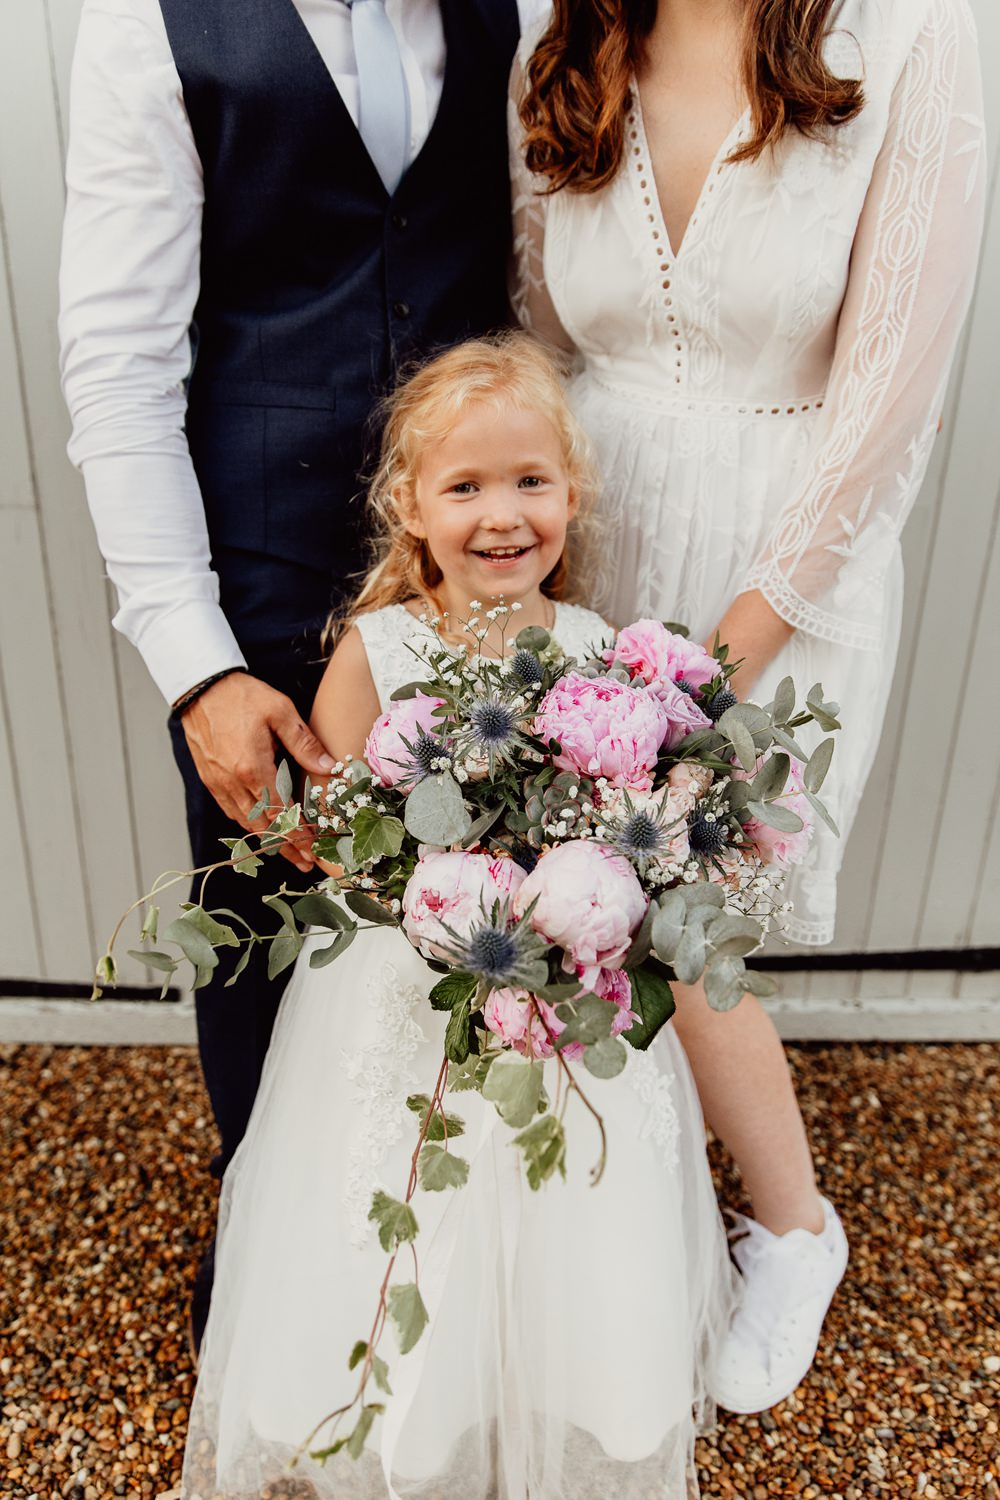 Bouquet Flowers Bride Bridal Pink Peony Peonies Eucalyptus Flower Girl Mannington Gardens Wedding Cara Zagni Photography